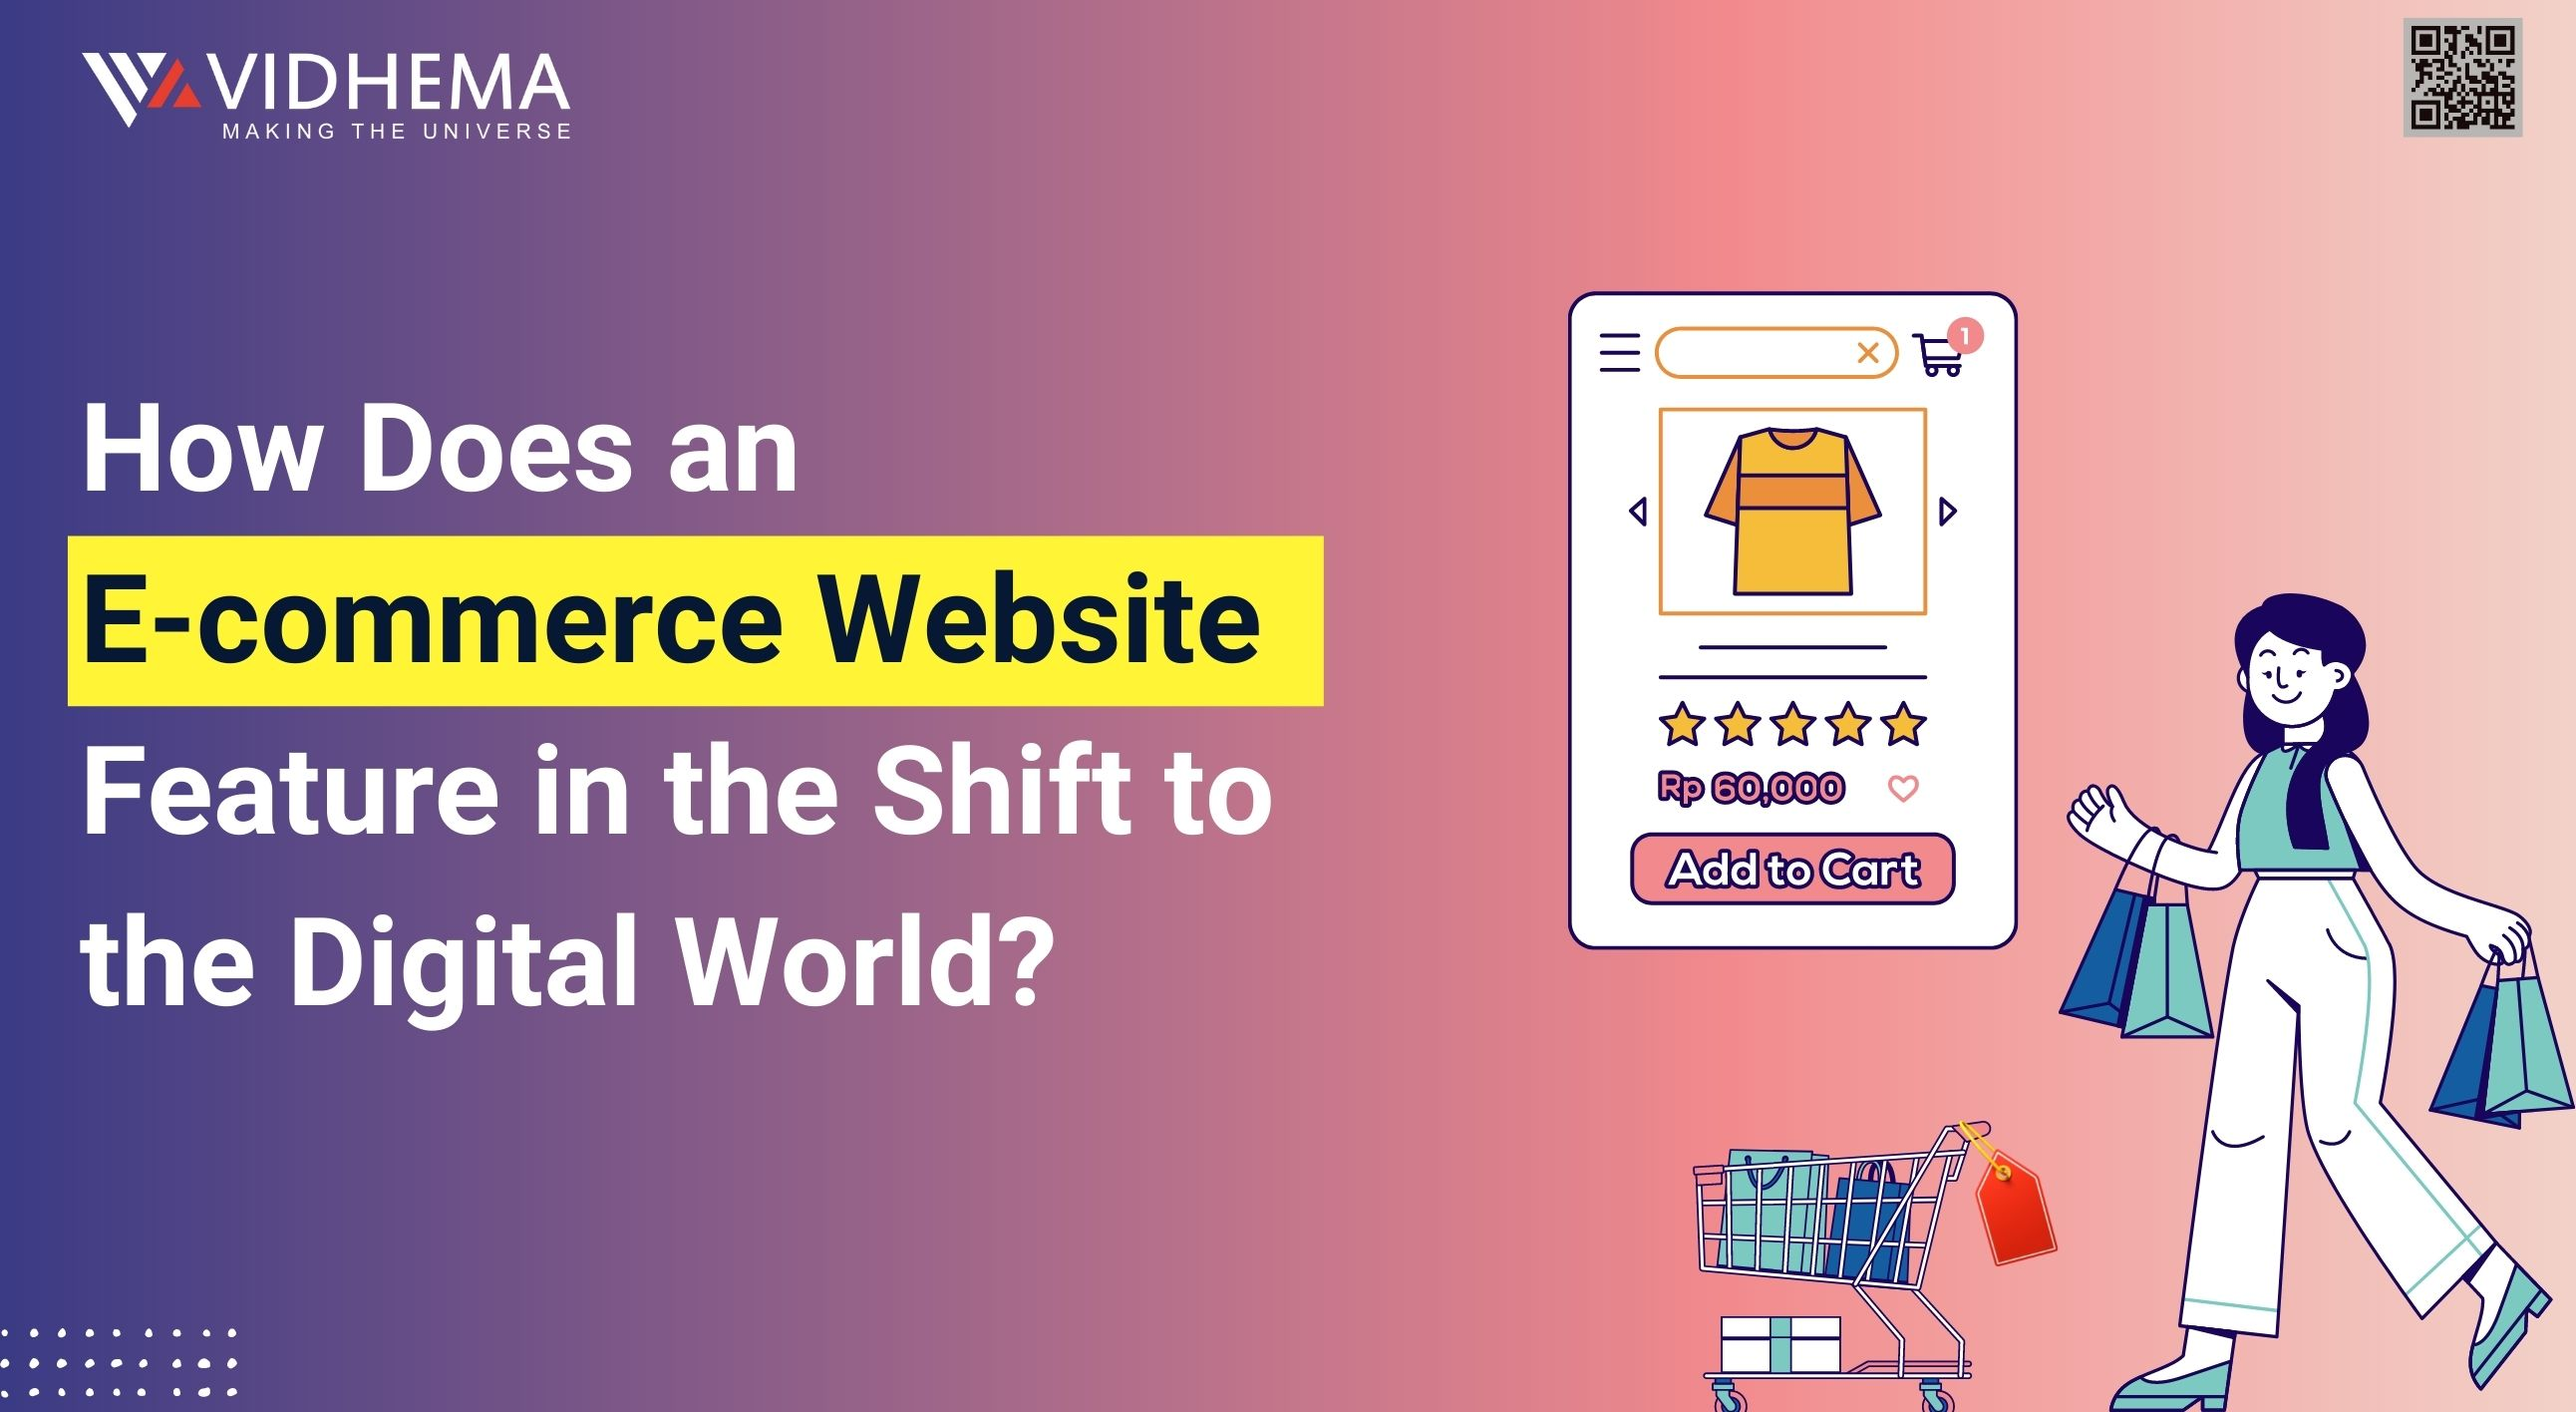 How does an eCommerce Website feature in the Shift to the Digital World?